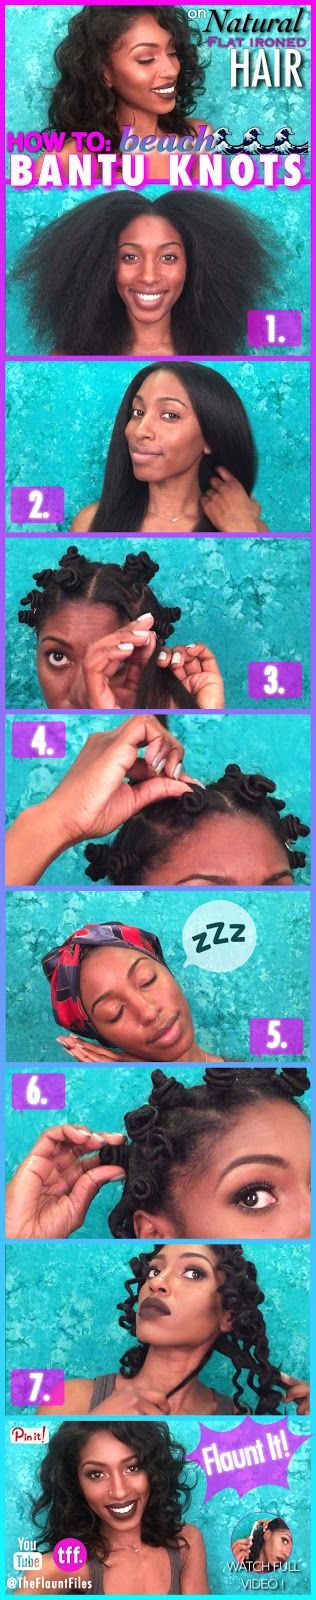 BANTU KNOTS ON NATURAL FLAT IRONED HAIR